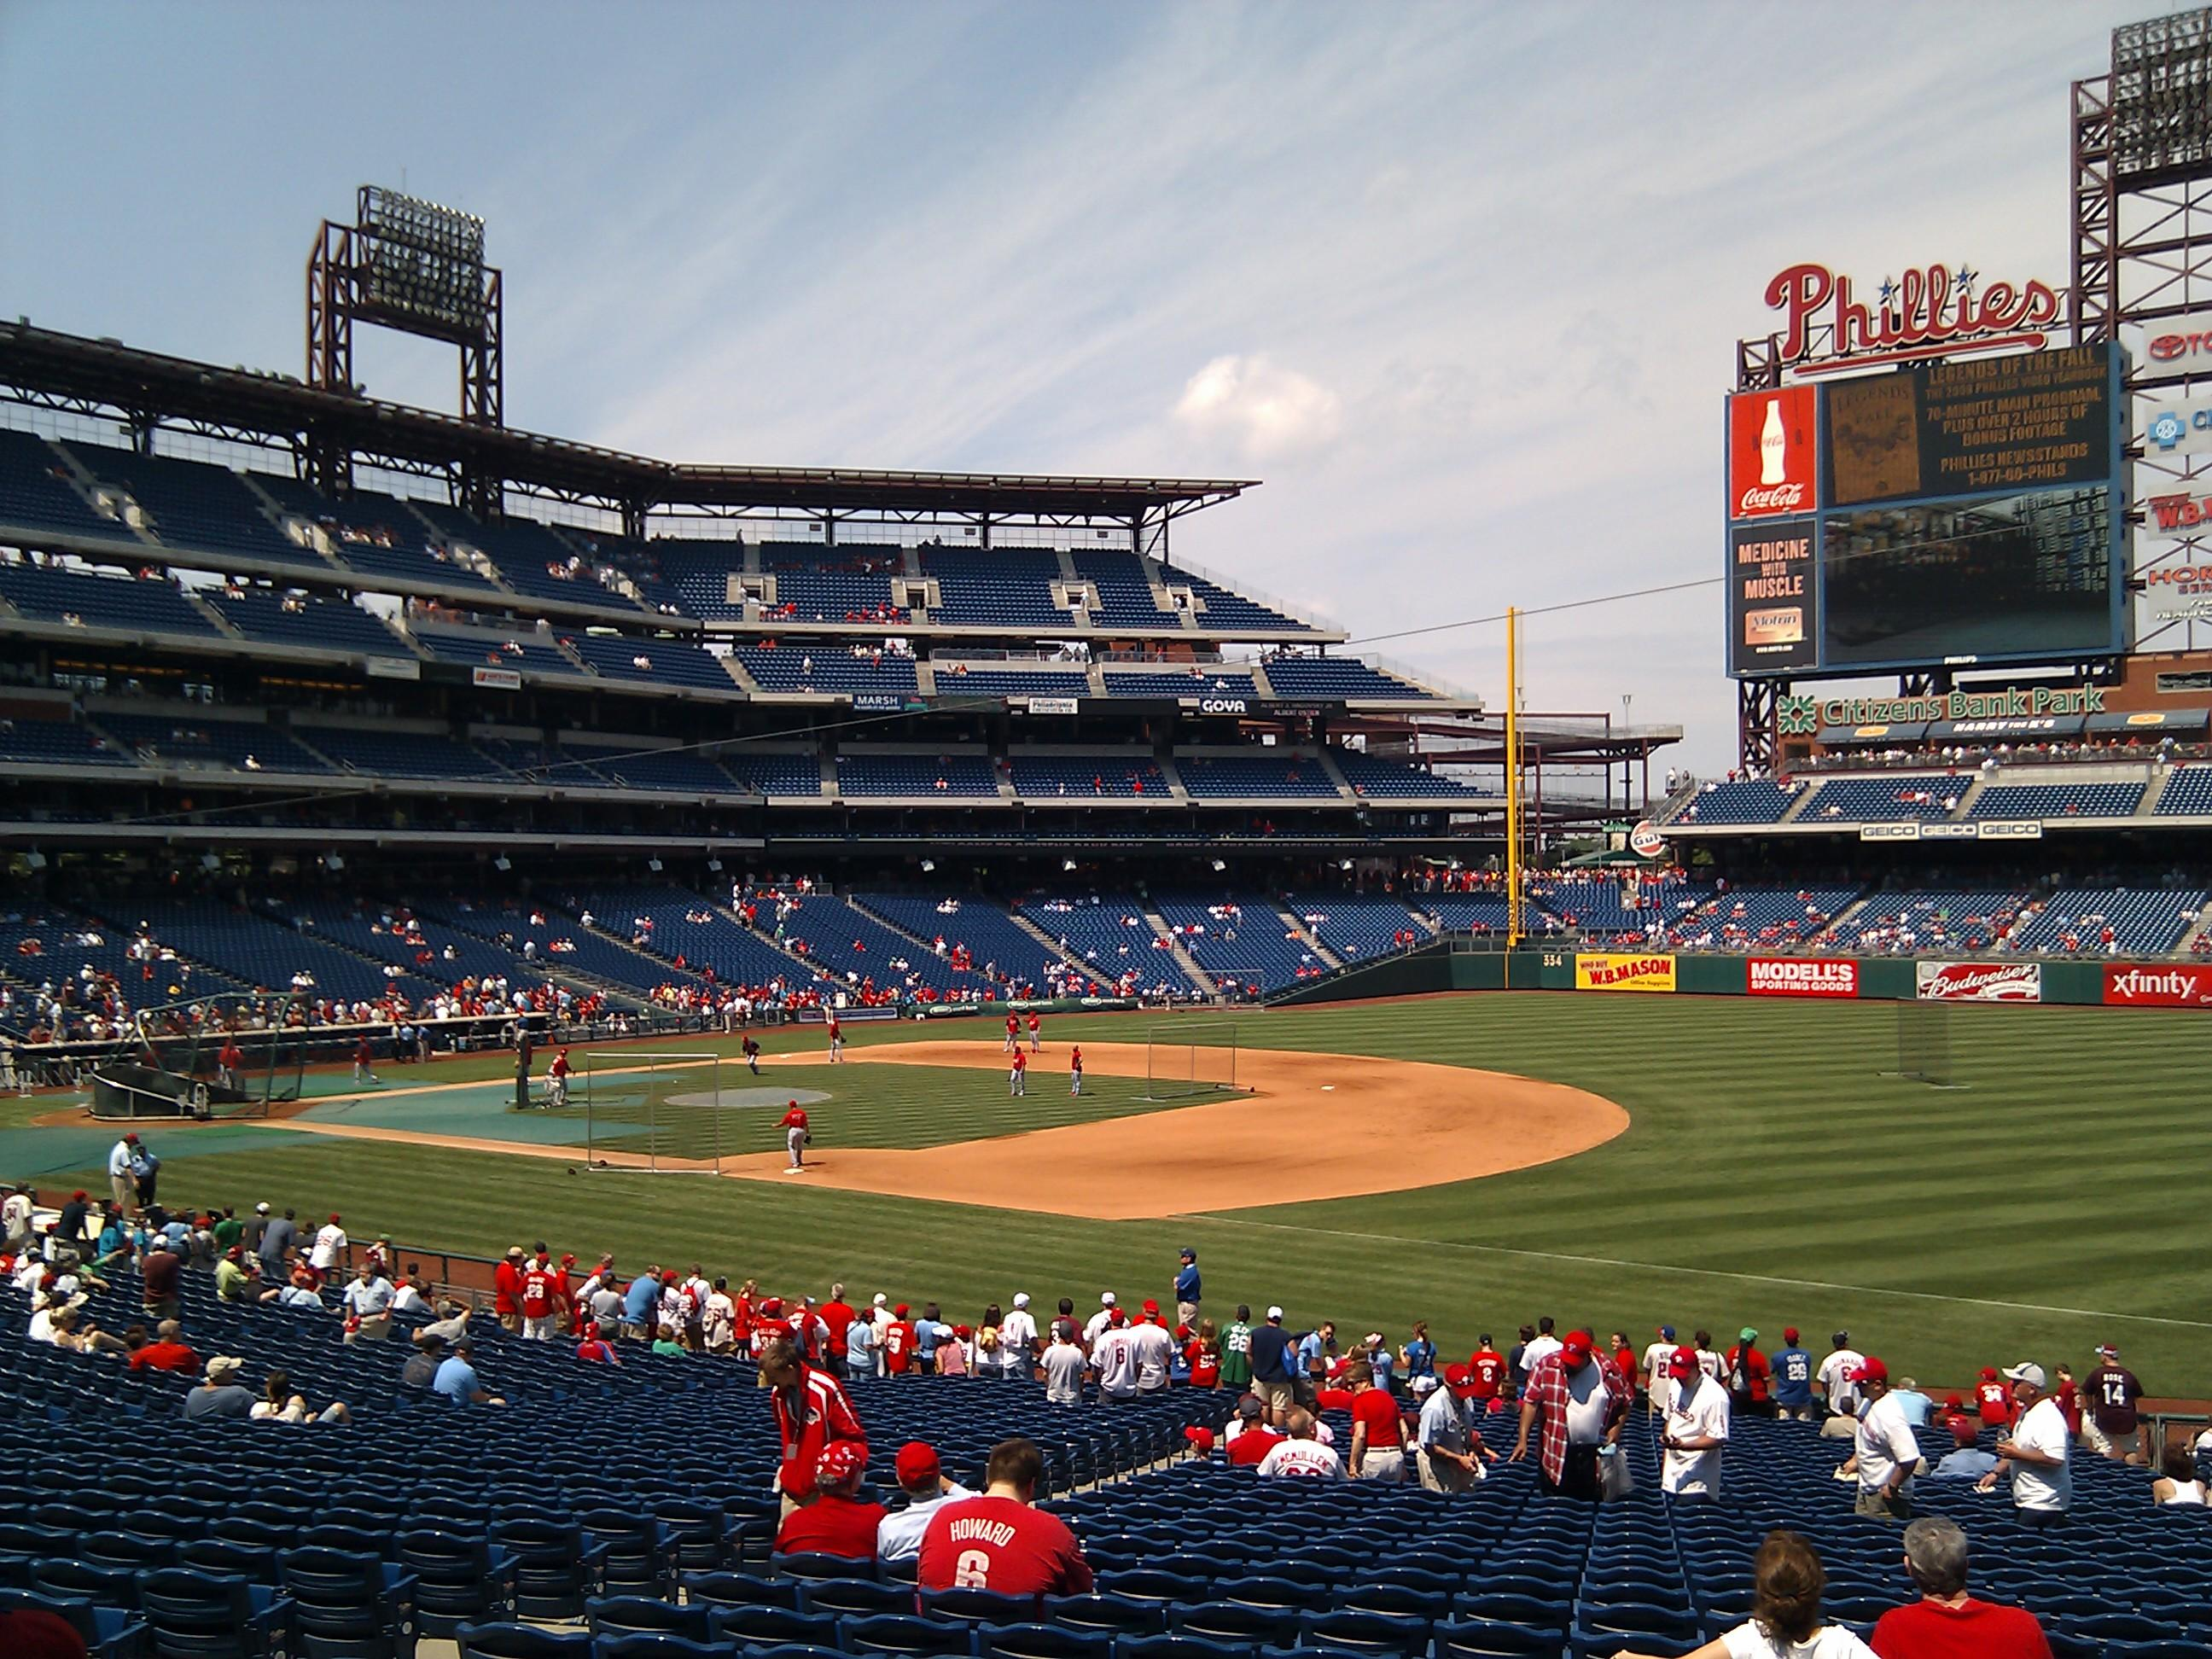 Citizens Bank Park Section 112 Row 35 Seat 11